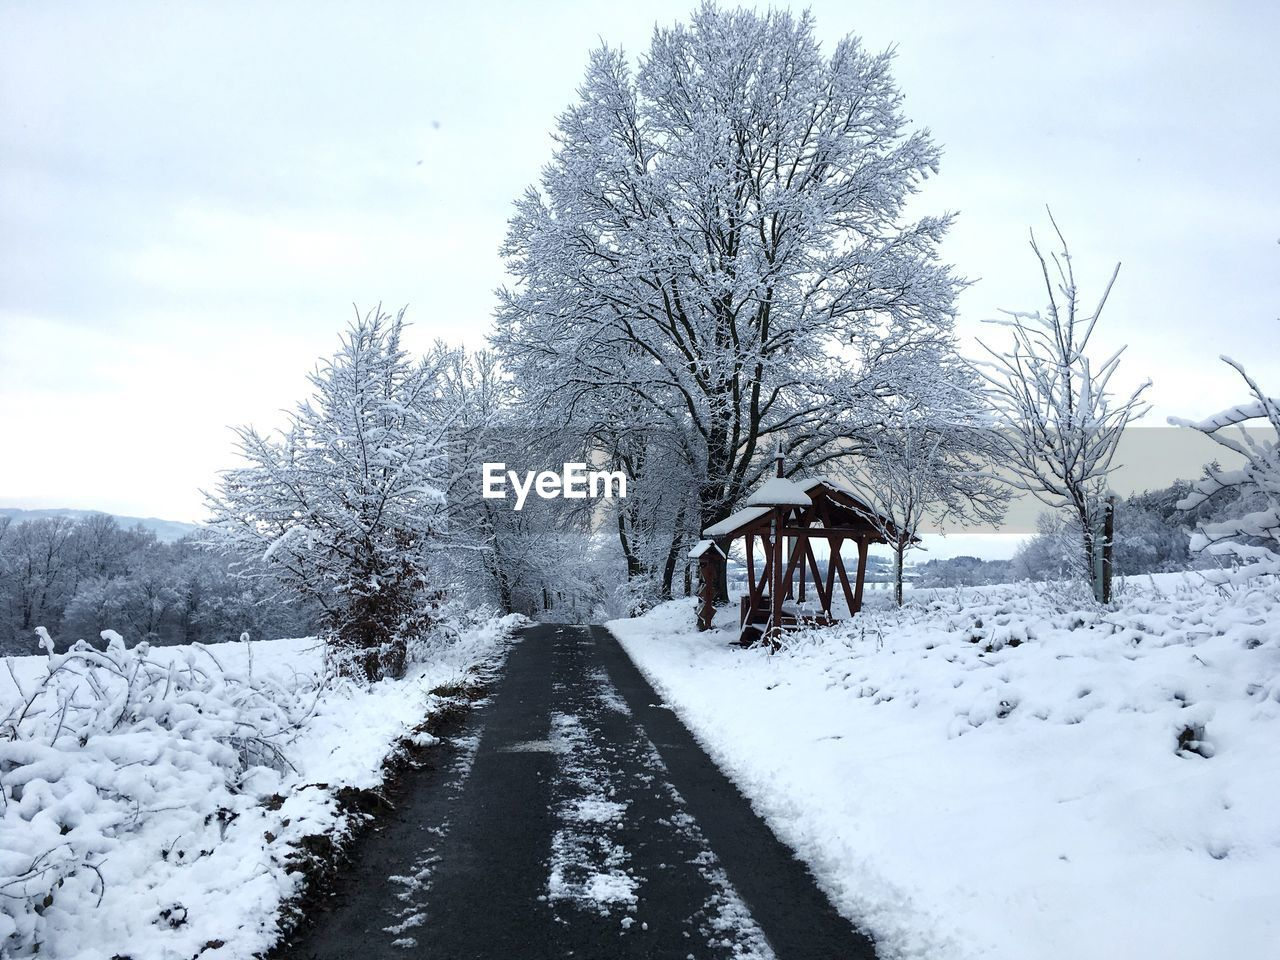 snow, cold temperature, winter, tree, sky, plant, beauty in nature, nature, covering, white color, scenics - nature, day, direction, tranquility, the way forward, tranquil scene, no people, land, bare tree, outdoors